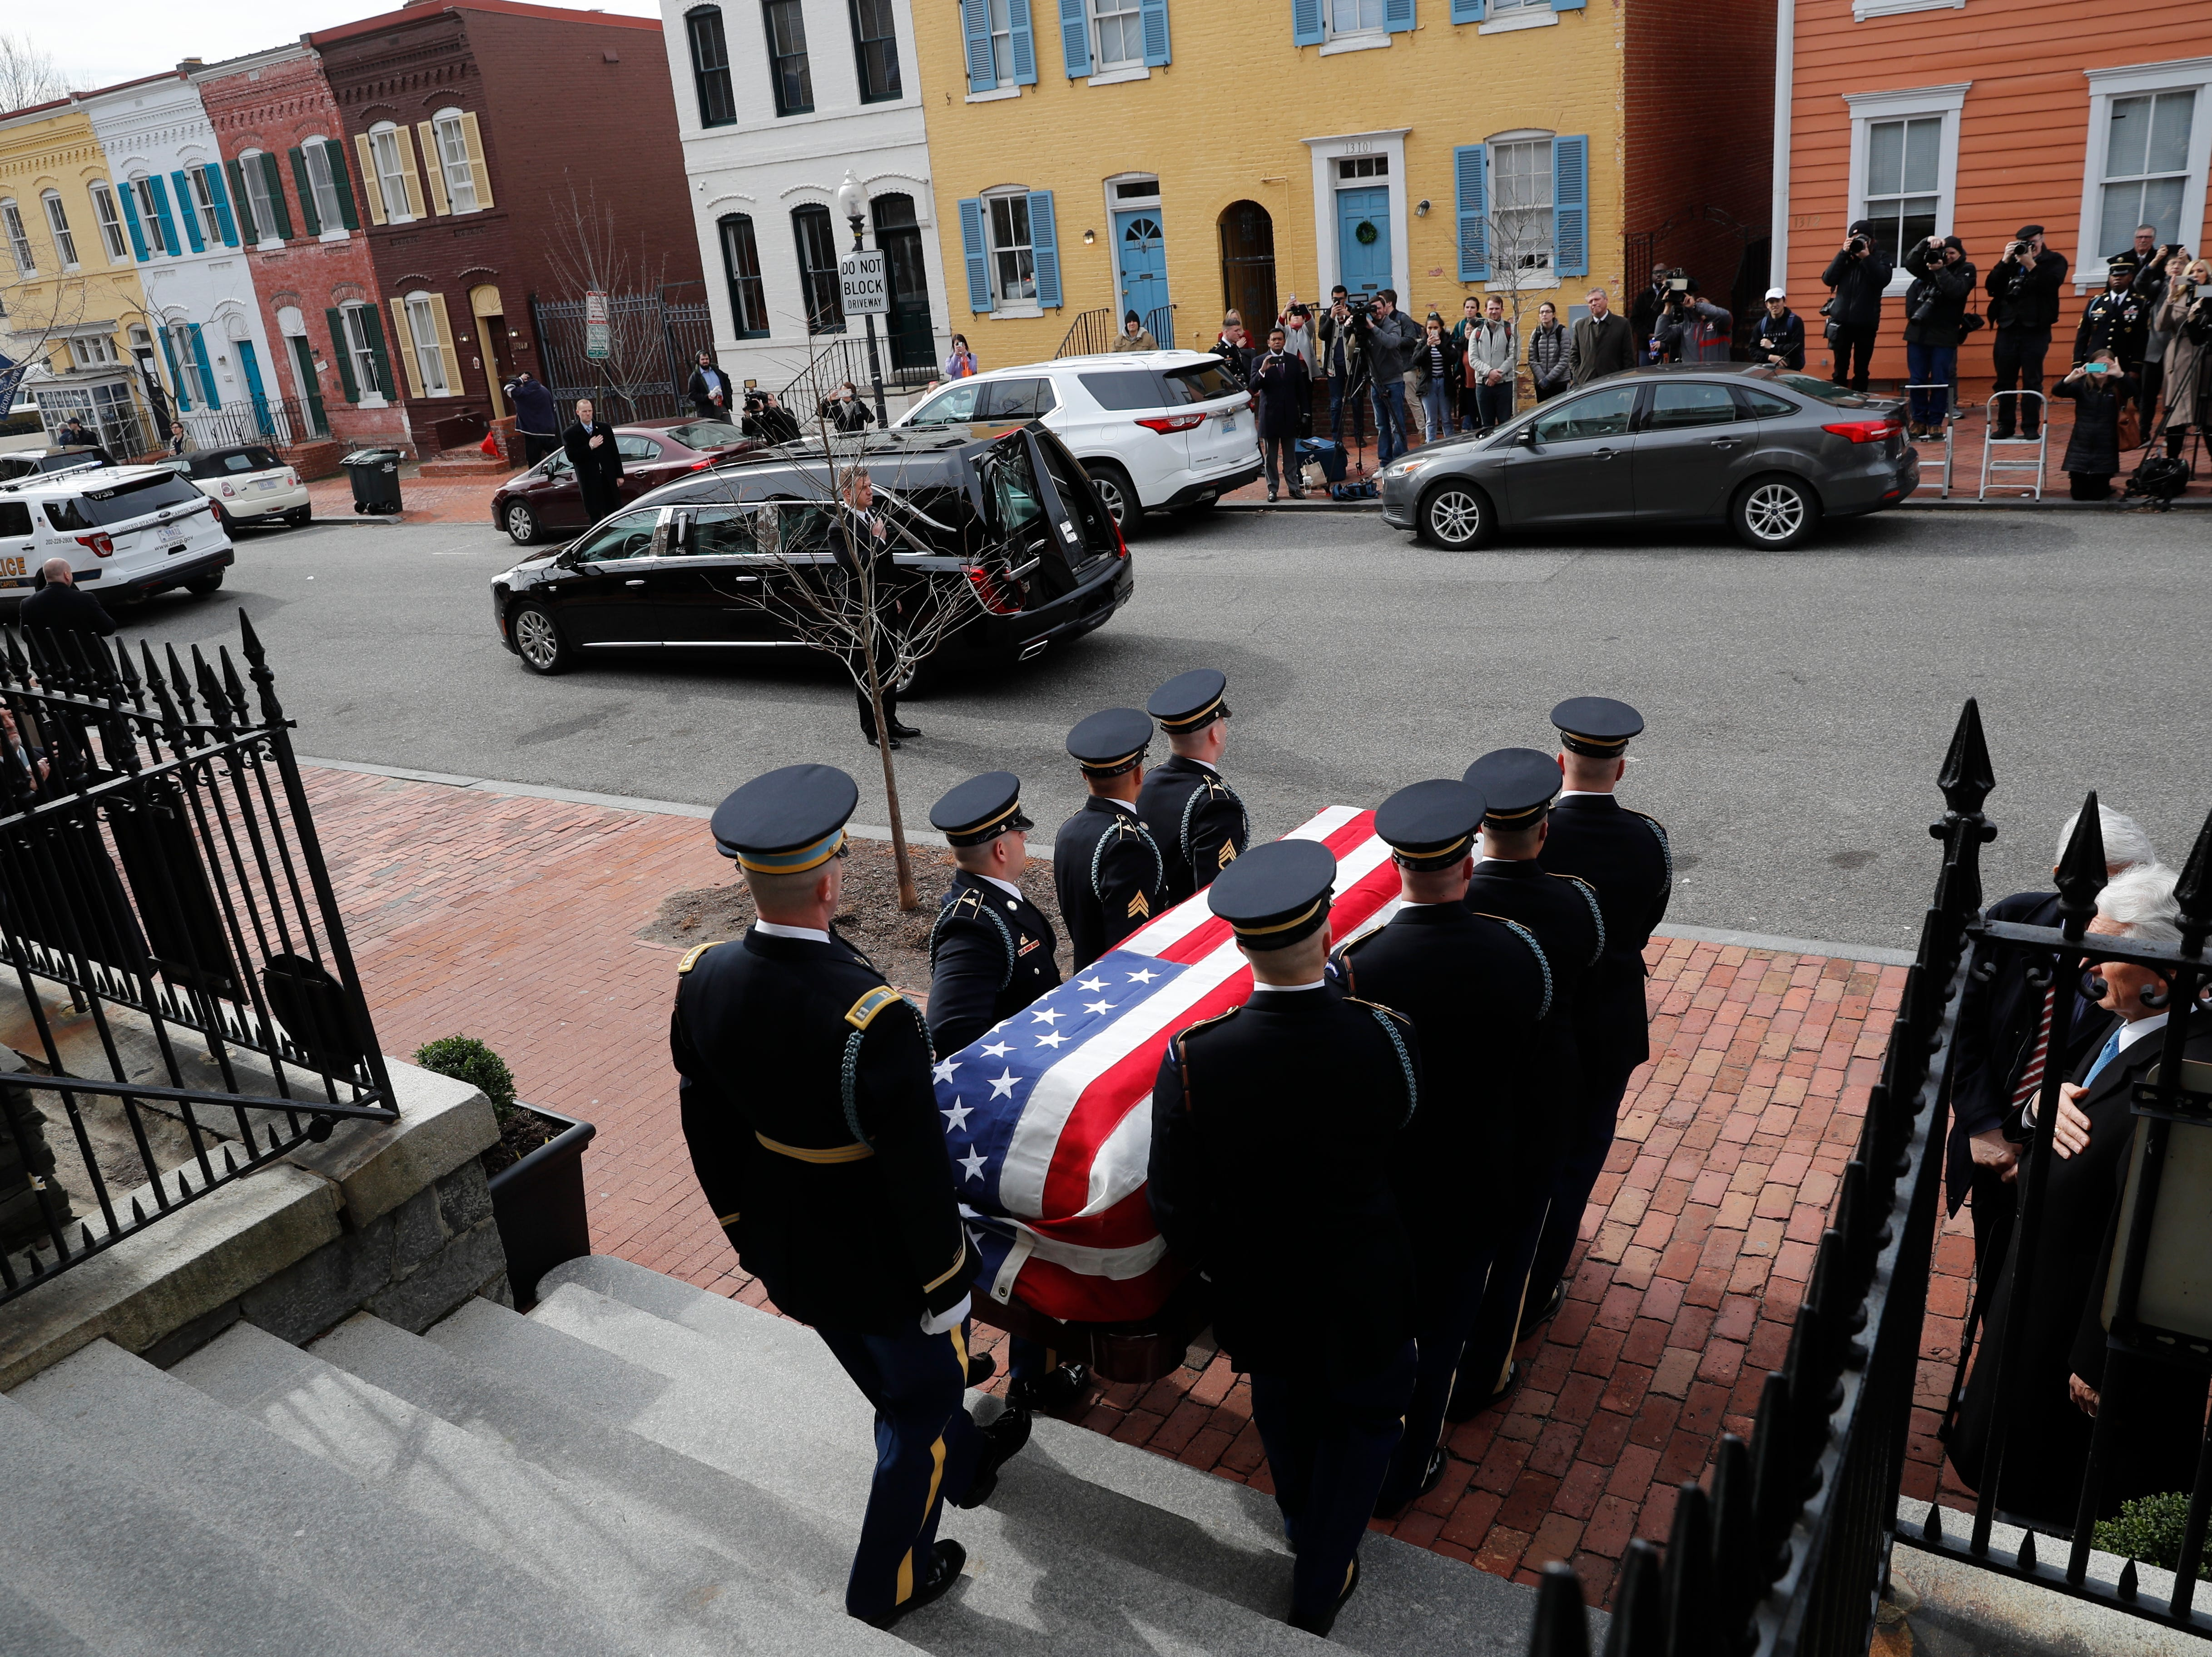 The flag-draped casket of former Rep. John Dingell, D-Dearborn, departs the Holy Trinity Catholic Church, after his funeral, Thursday, Feb. 14, 2019, in Washington.